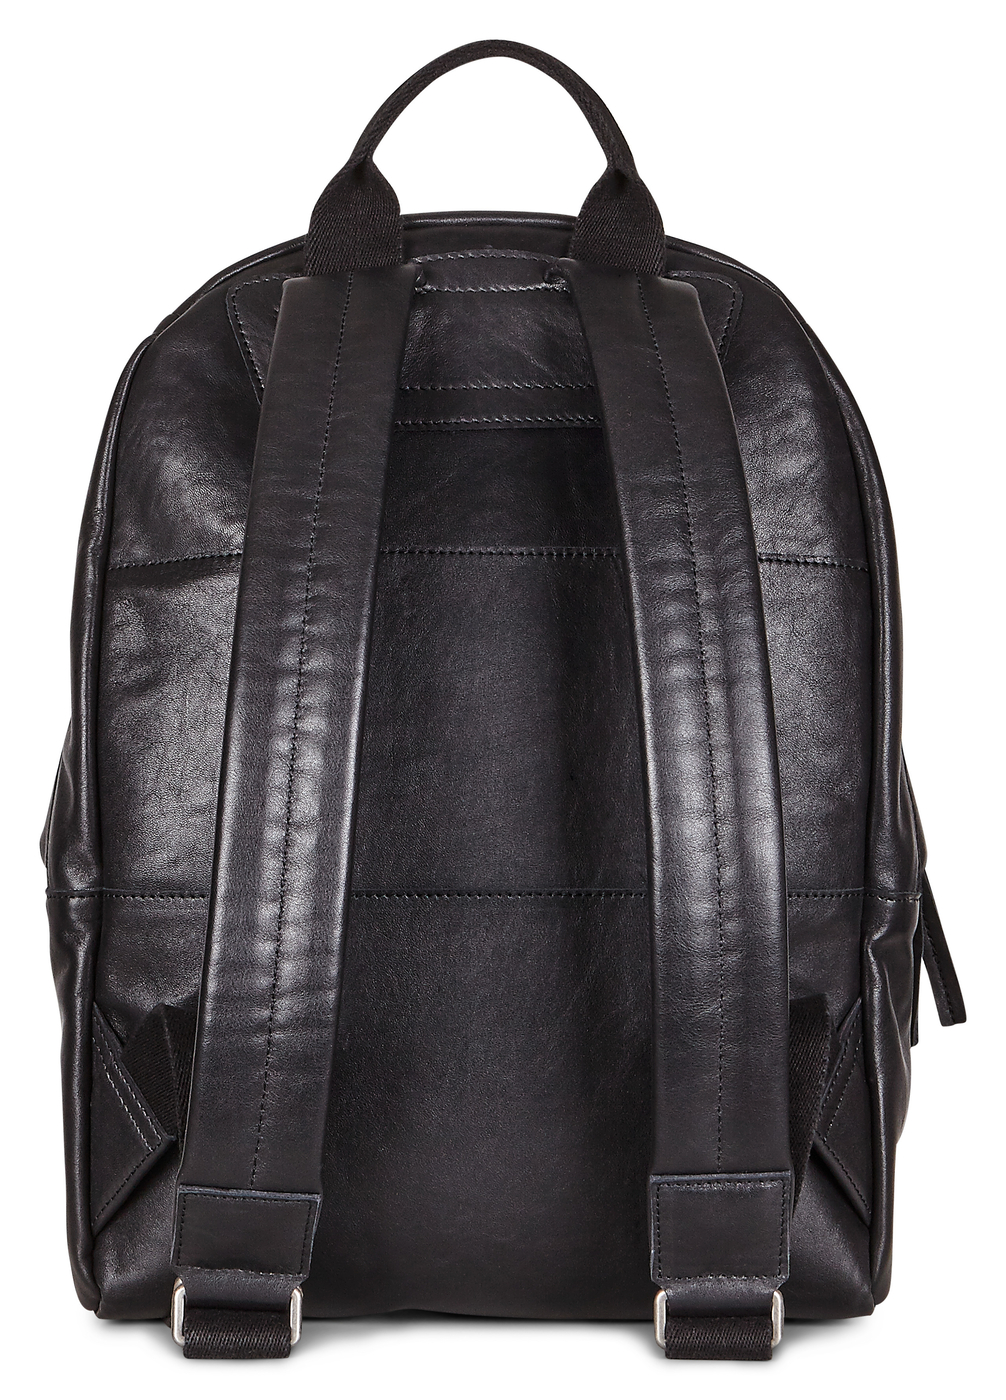 ECCO CASPER Medium Backpack